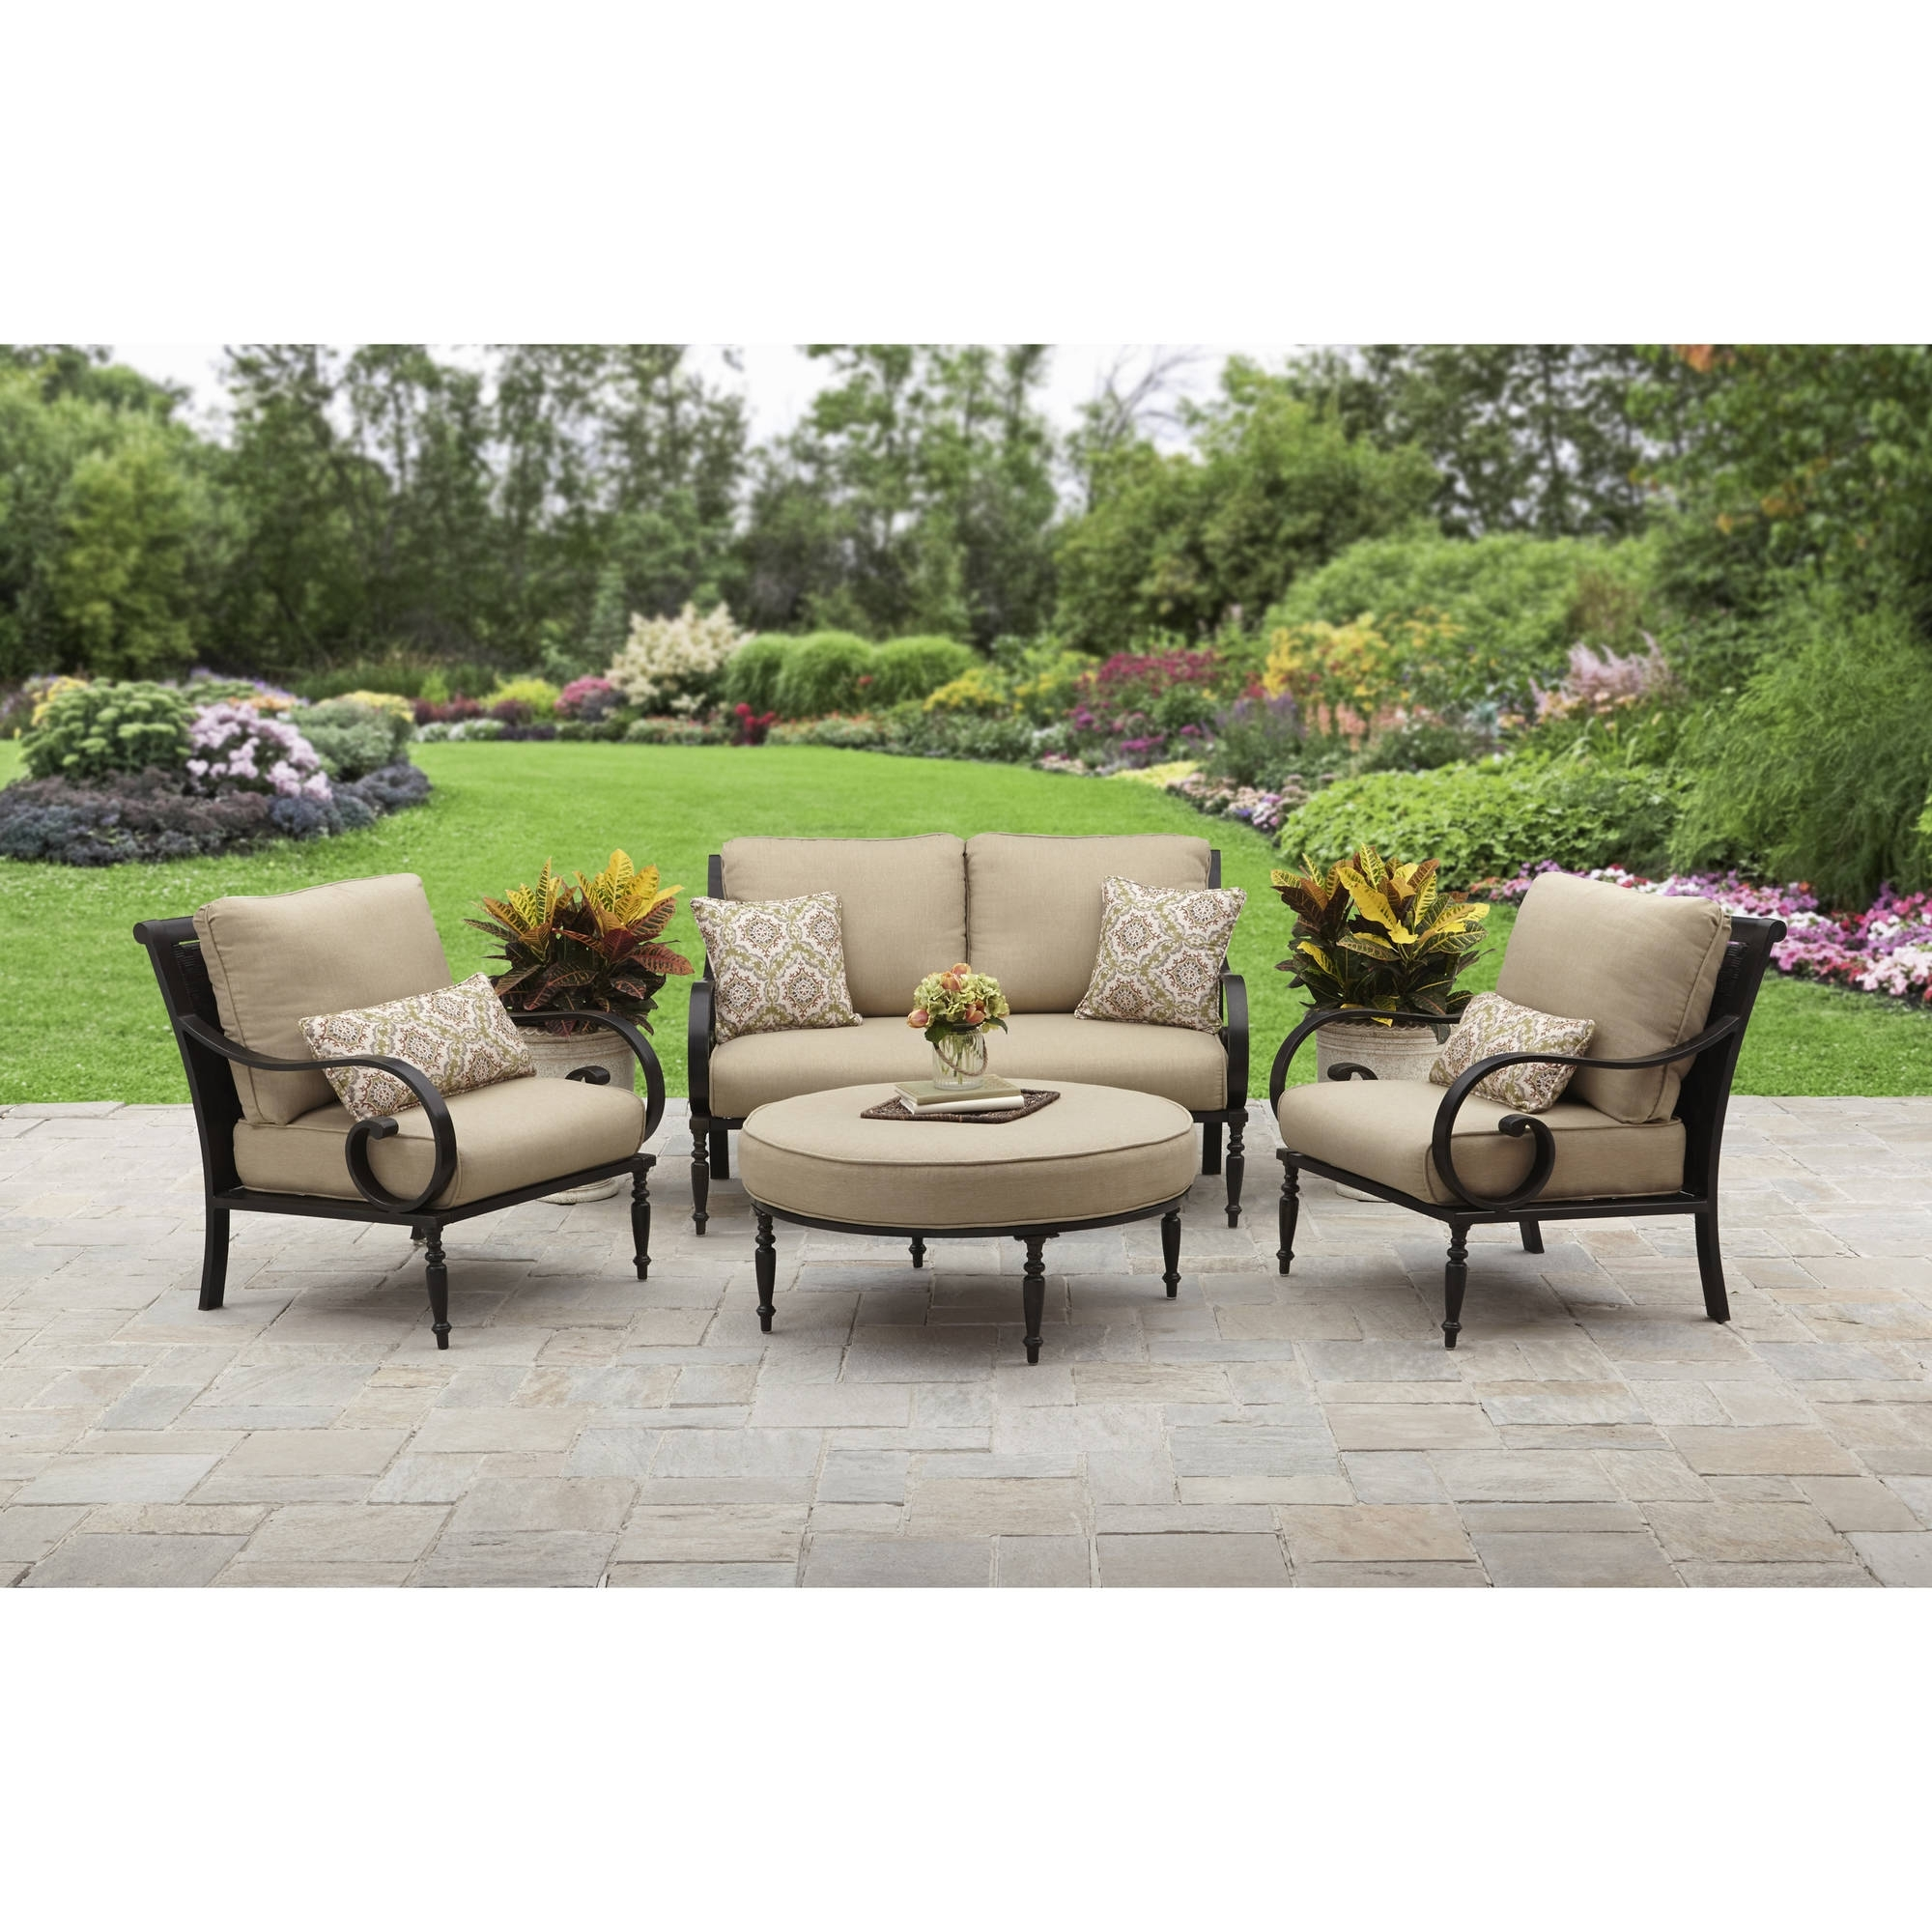 Better Homes And Gardens Englewood Heights Ii Aluminum 4 Piece Intended For Preferred Aluminum Patio Conversation Sets (View 4 of 20)